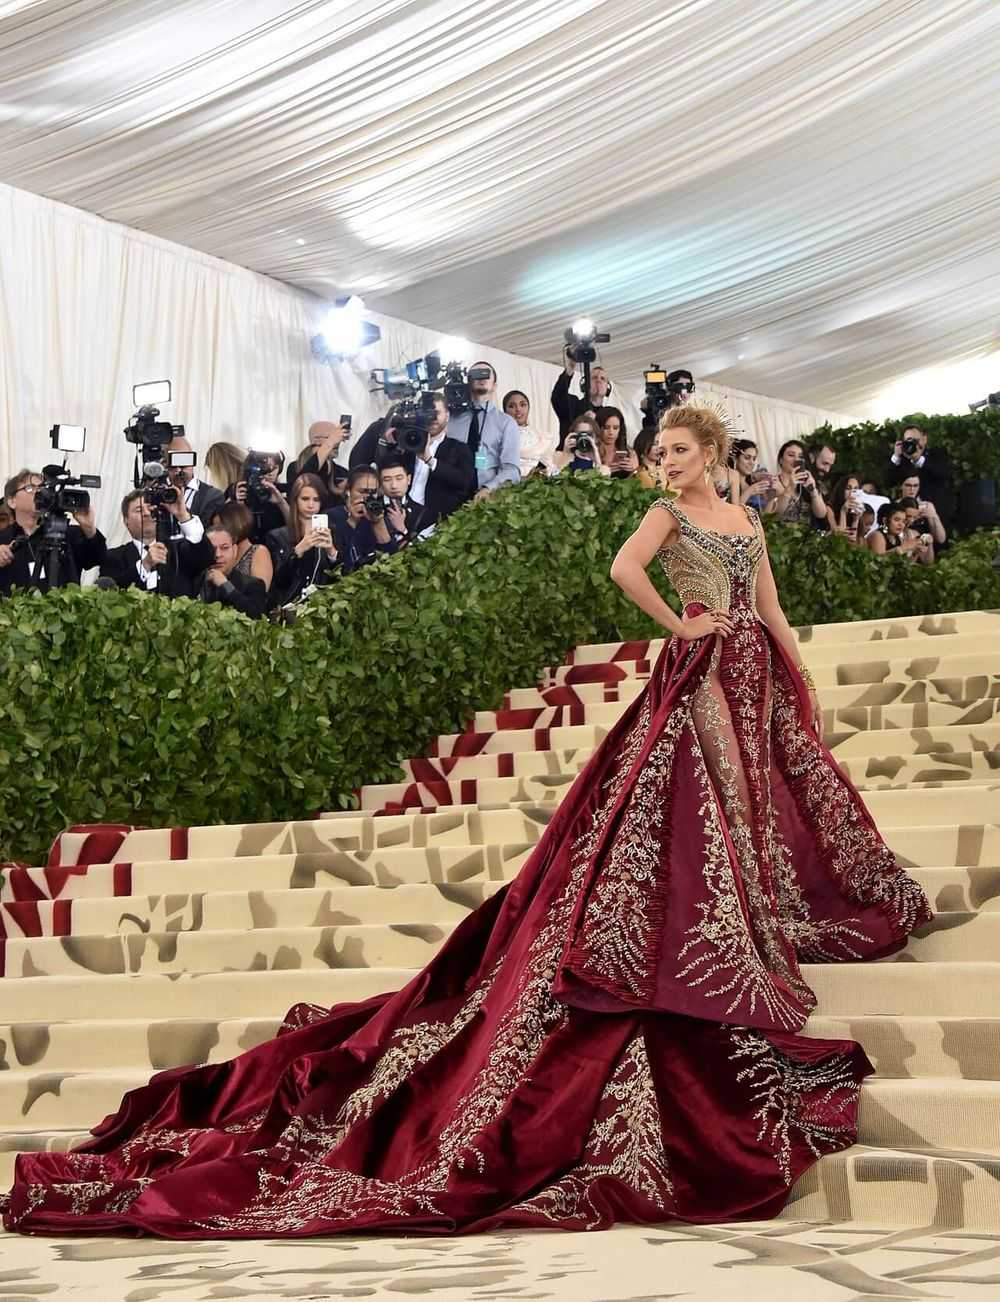 Blake Lively 2018 Met Gala Dress Getty Images